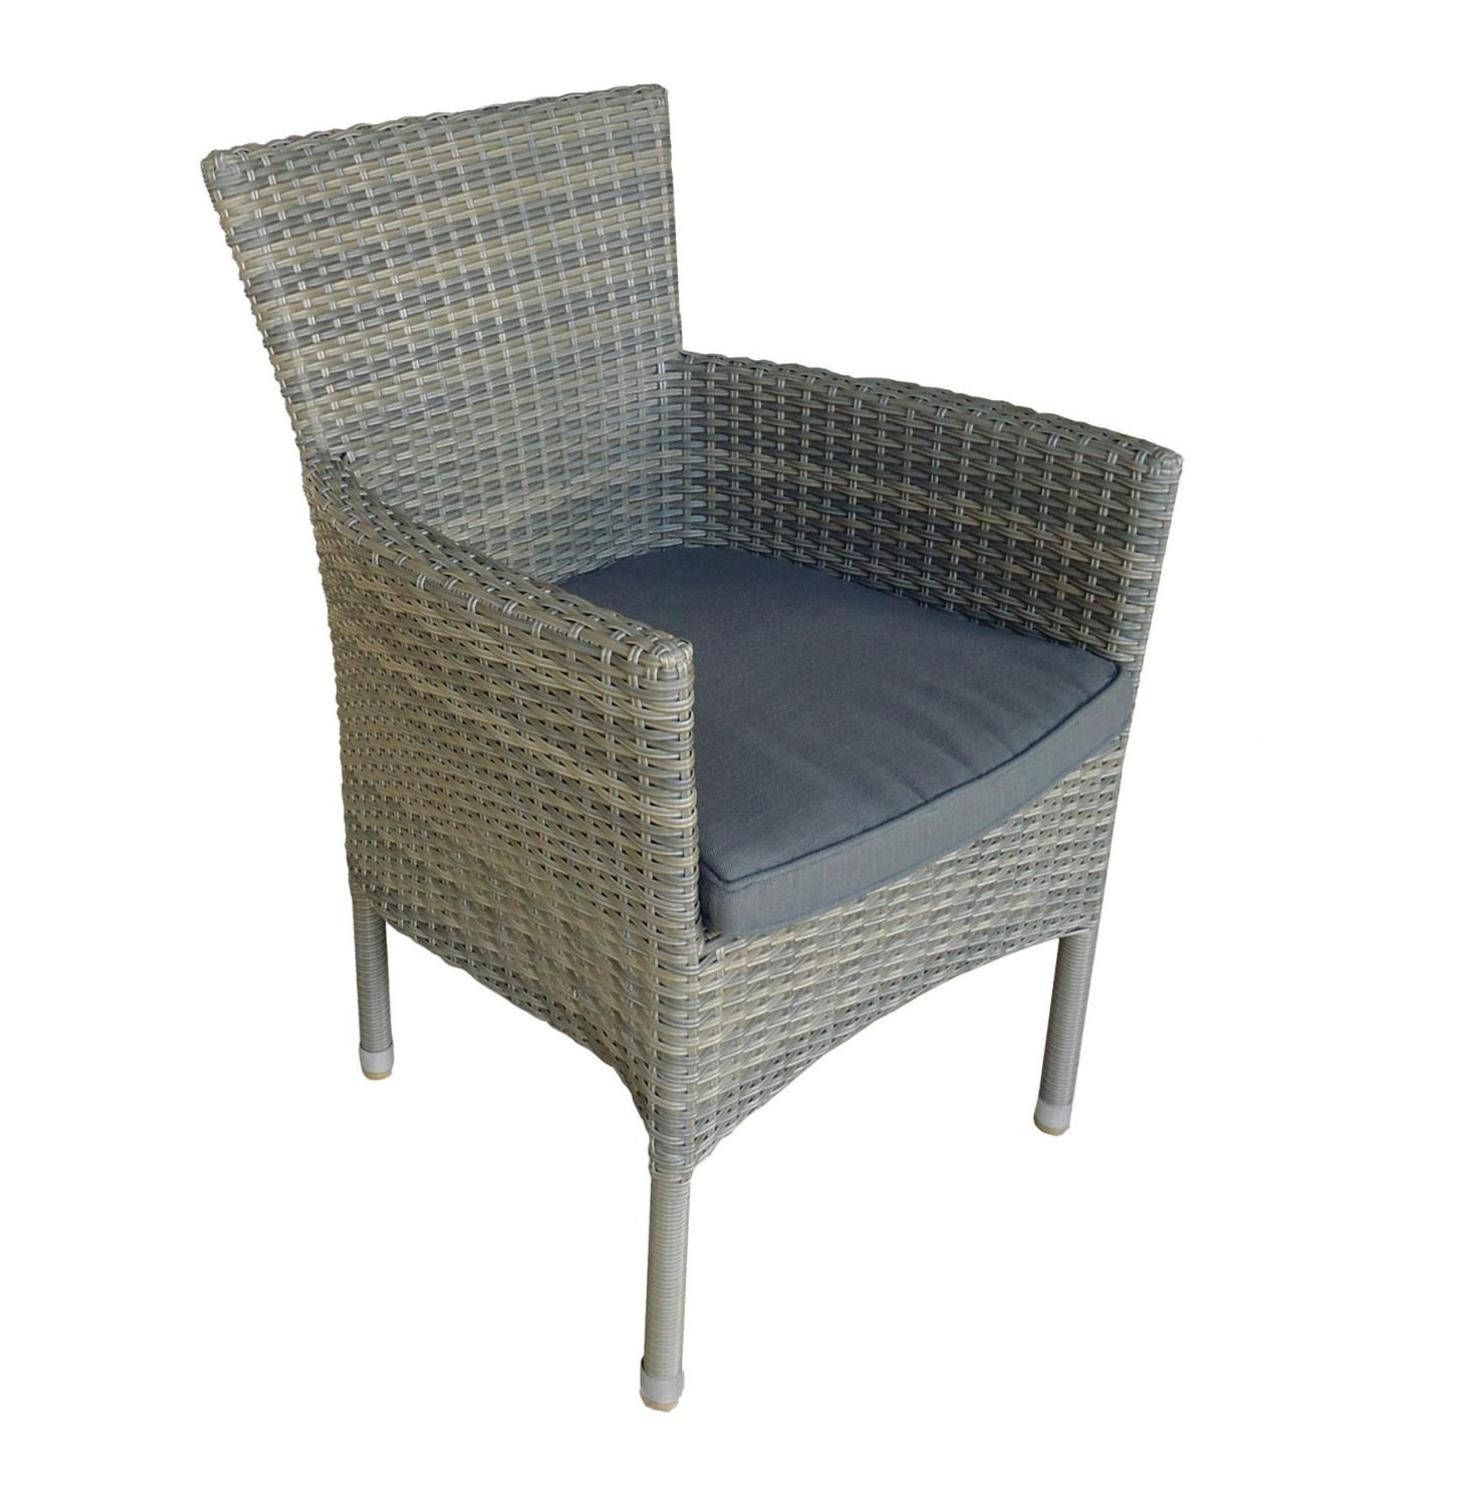 Terrace leisure provence stacking dining chair kobo grey lowest prices specials online makro